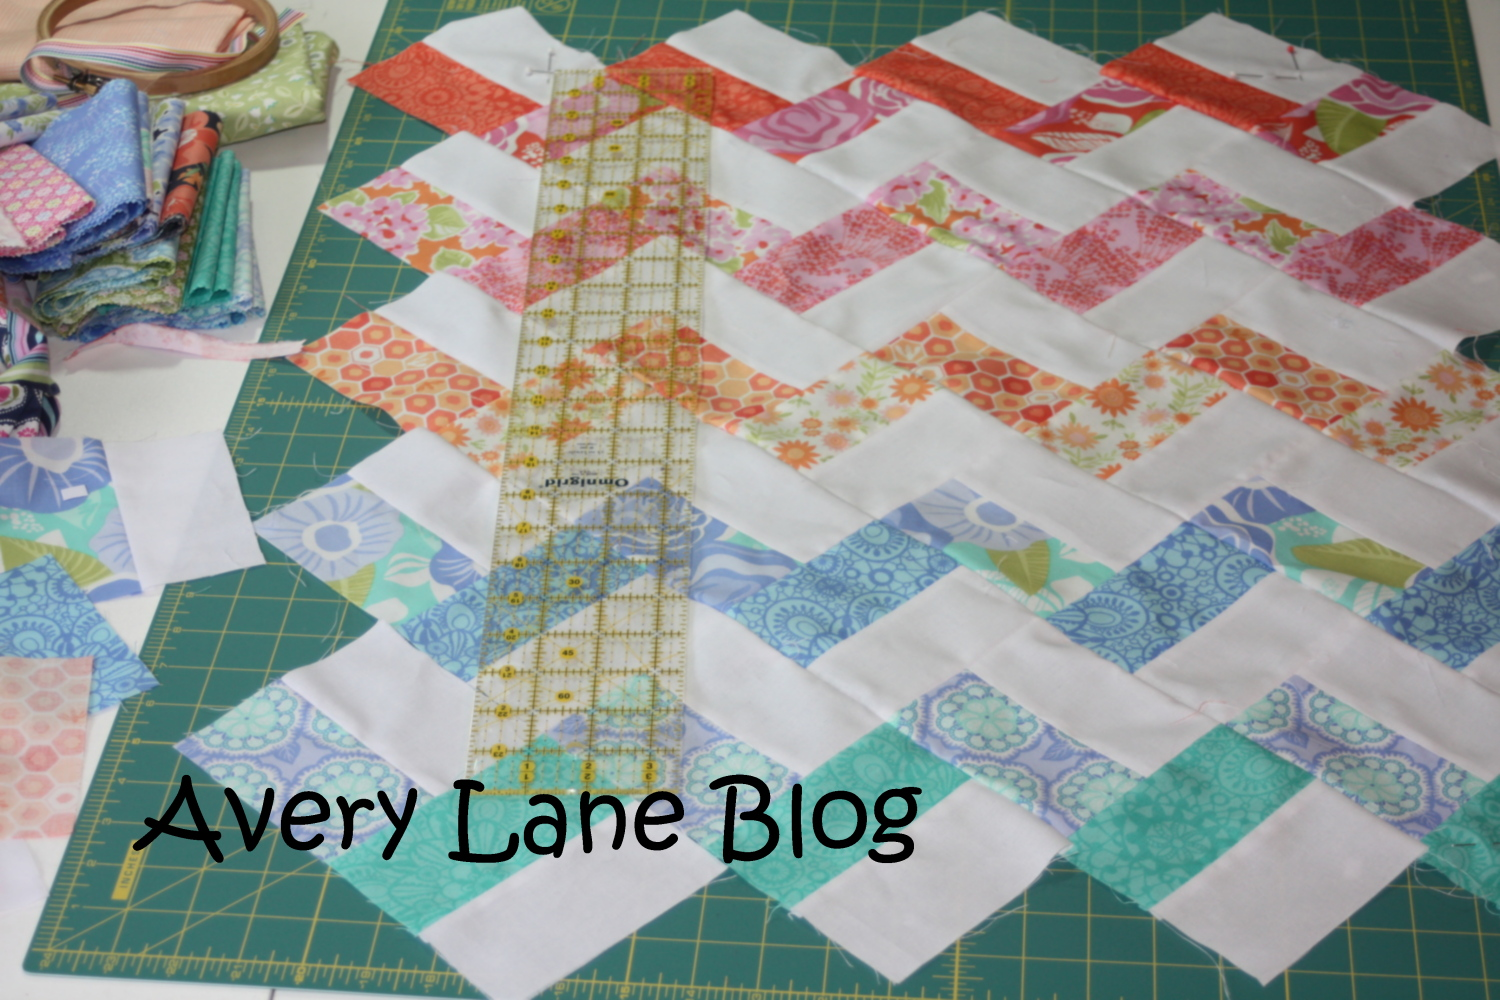 Quilt Patterns Using Squares And Rectangles : Babysteps in Quilting - Avery Lane Sewing